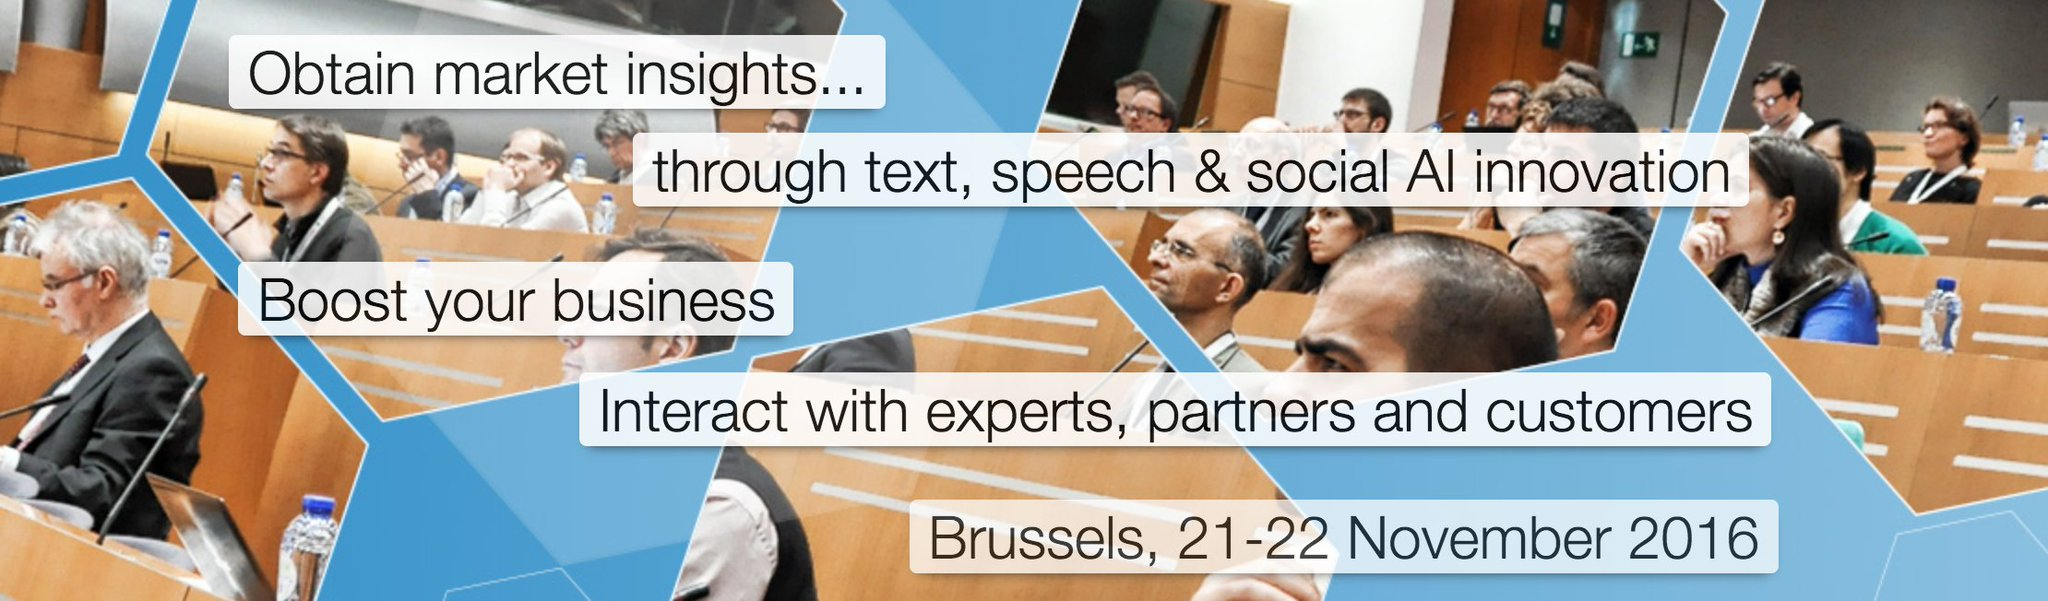 https://t.co/s14mxynYra is THE European event for text/speech #AI, market research & consumer insight. Speakers from 🇦🇹🇧🇪🇫🇷🇩🇪🇬🇷🇳🇱🇪🇸🇨🇭🇬🇧🇺🇸. https://t.co/XQCDz1ENgv